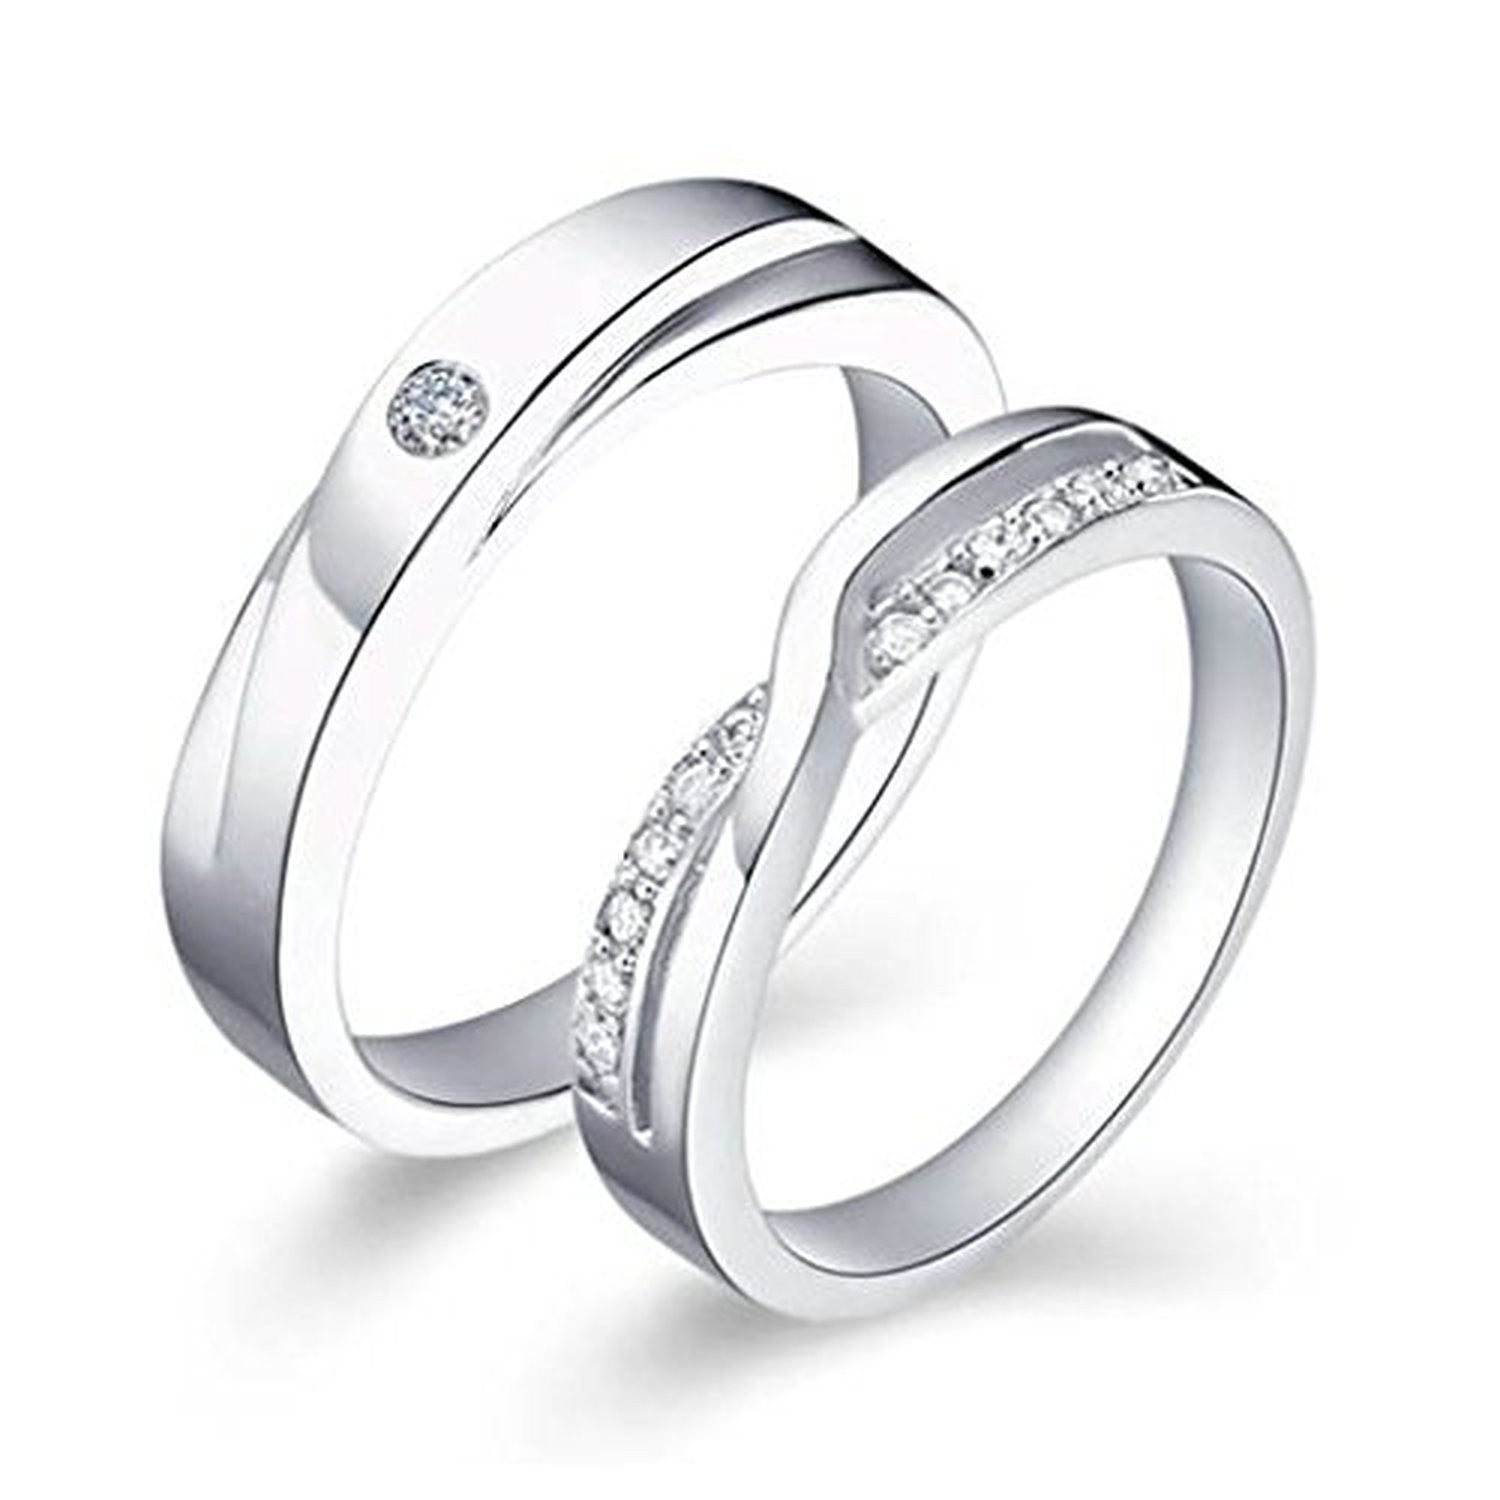 wedding silver of just rings ring sterling heart pay shipping evermarker free fresh pics